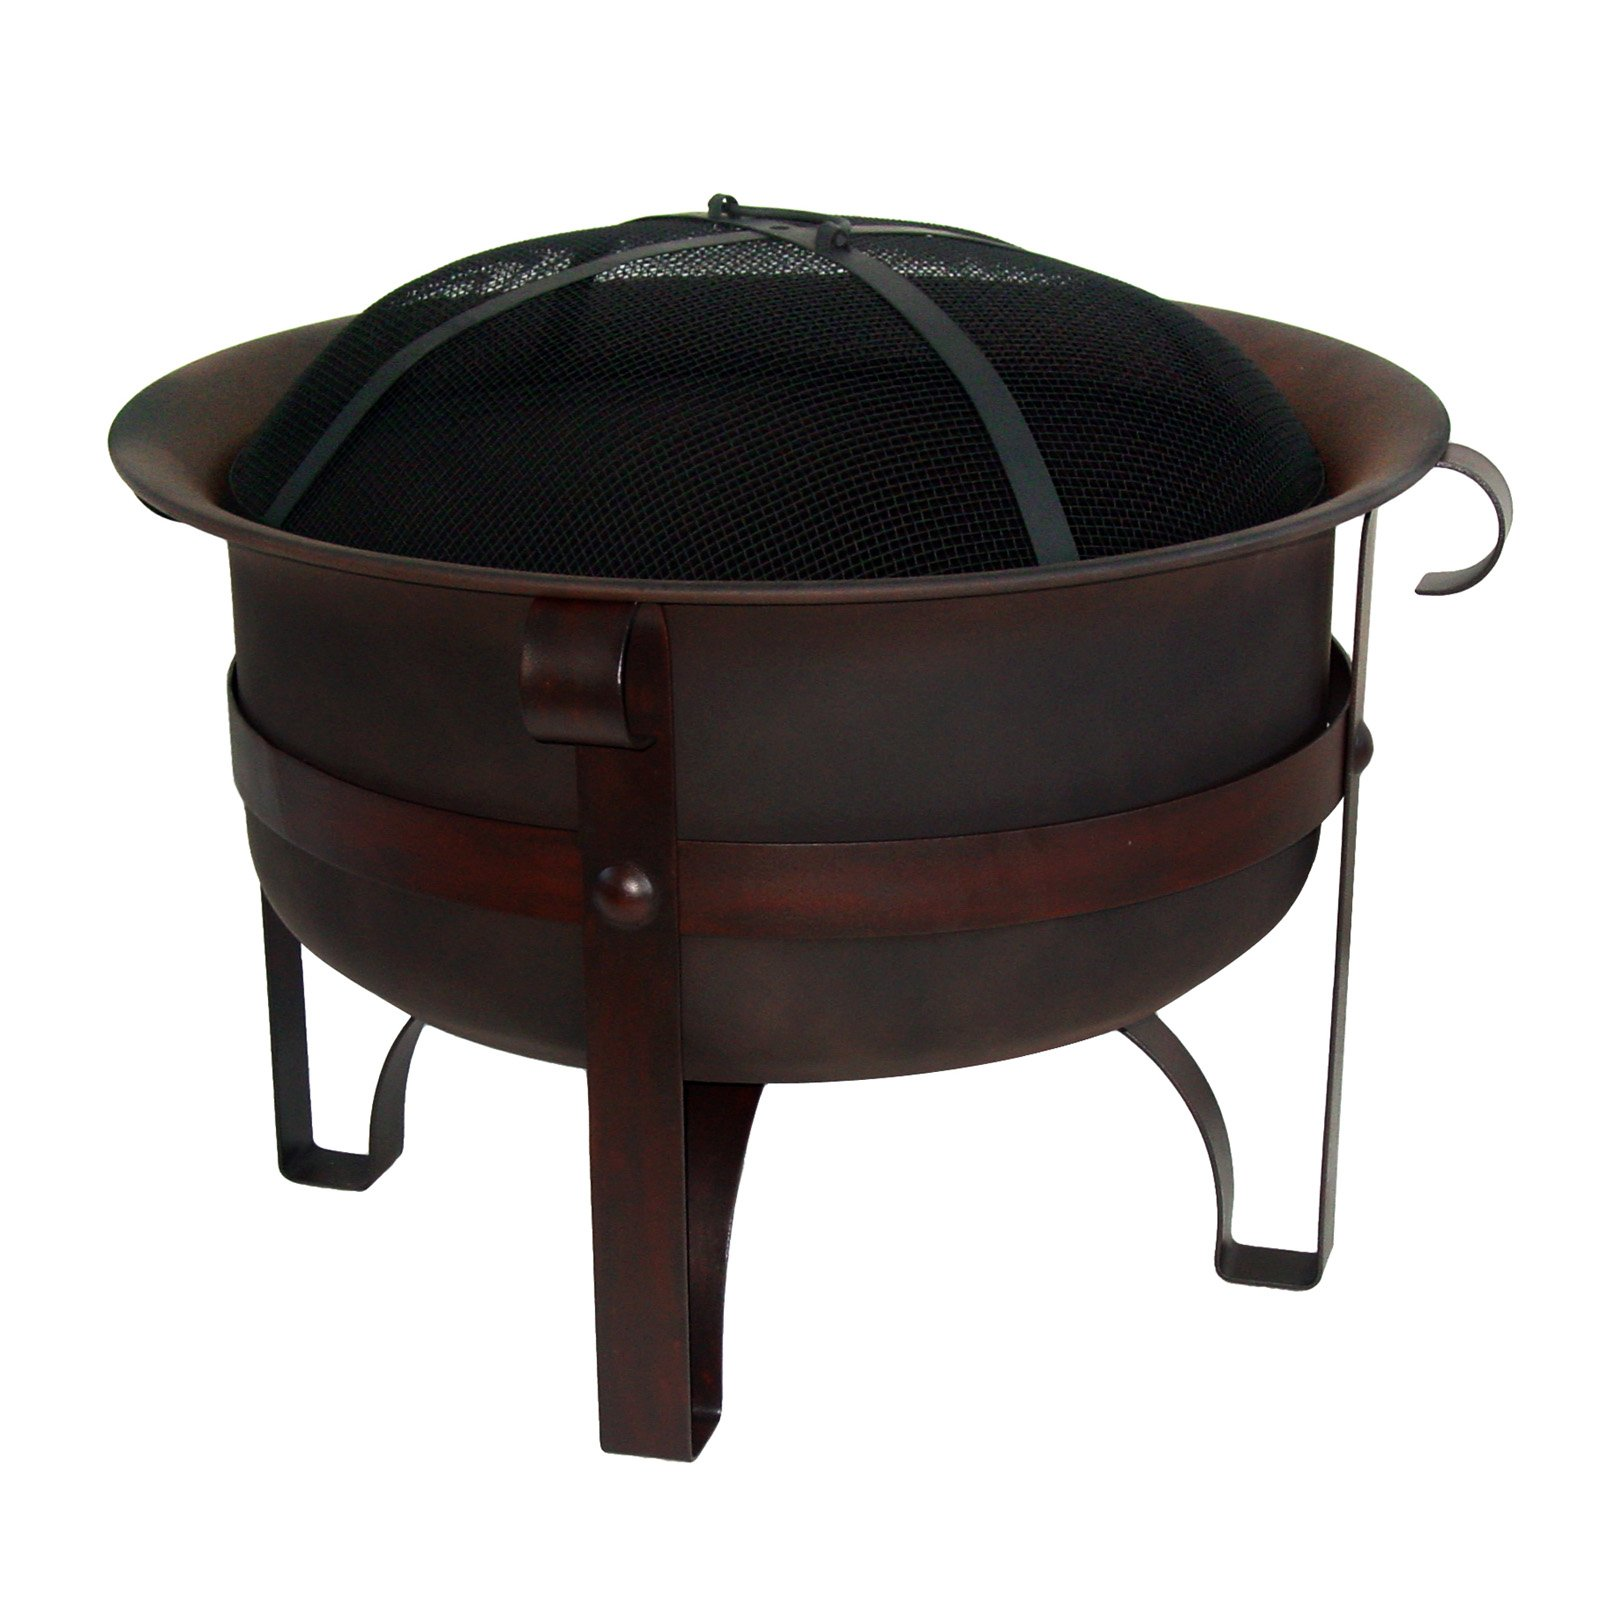 Red Ember Brockton Steel Cauldron Firepit with FREE Cover by Asia Direct